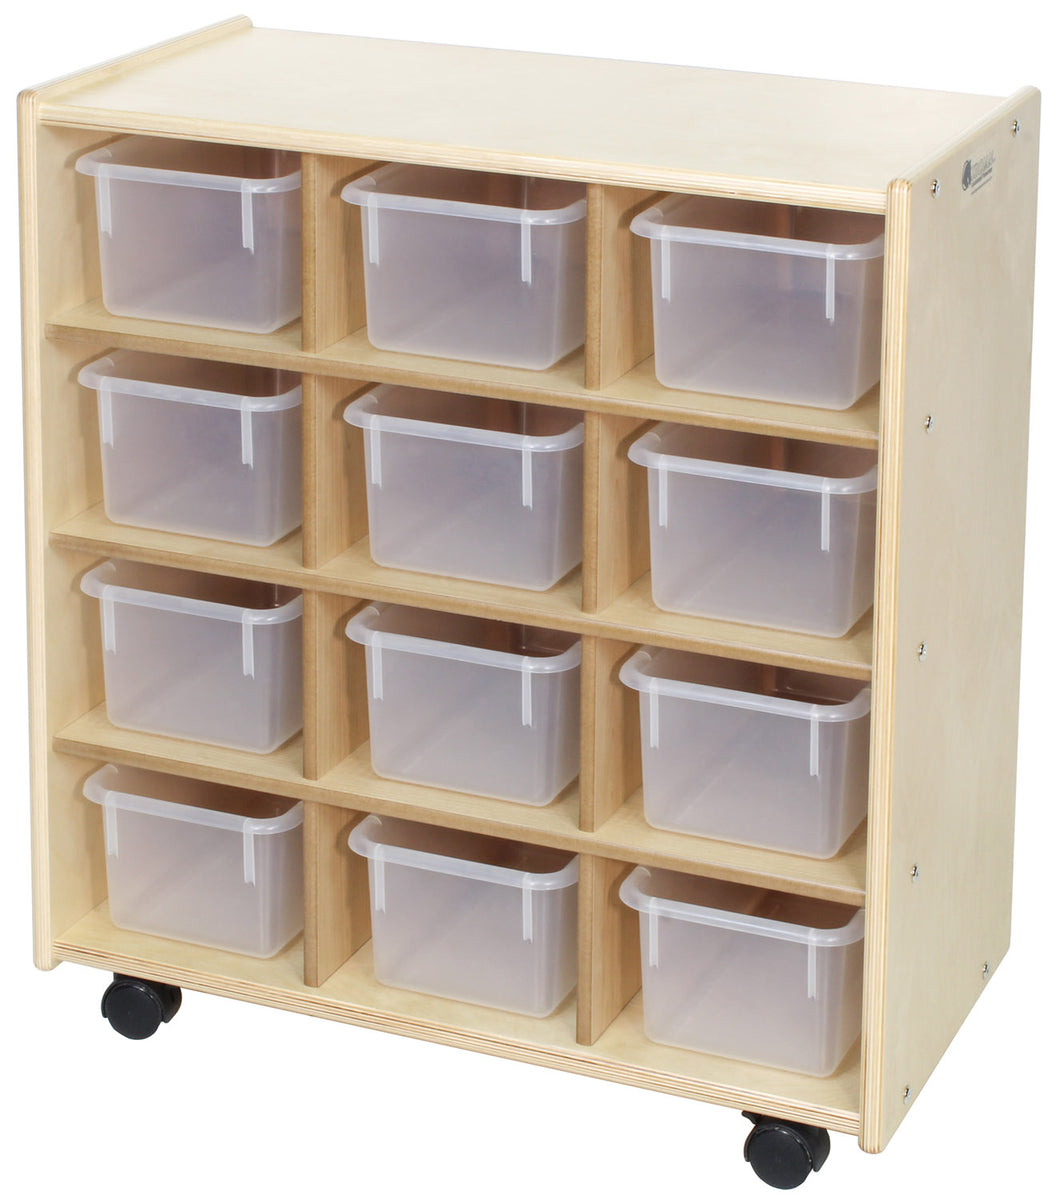 12 Small Bin Cubby Storage Units - 2 Versions